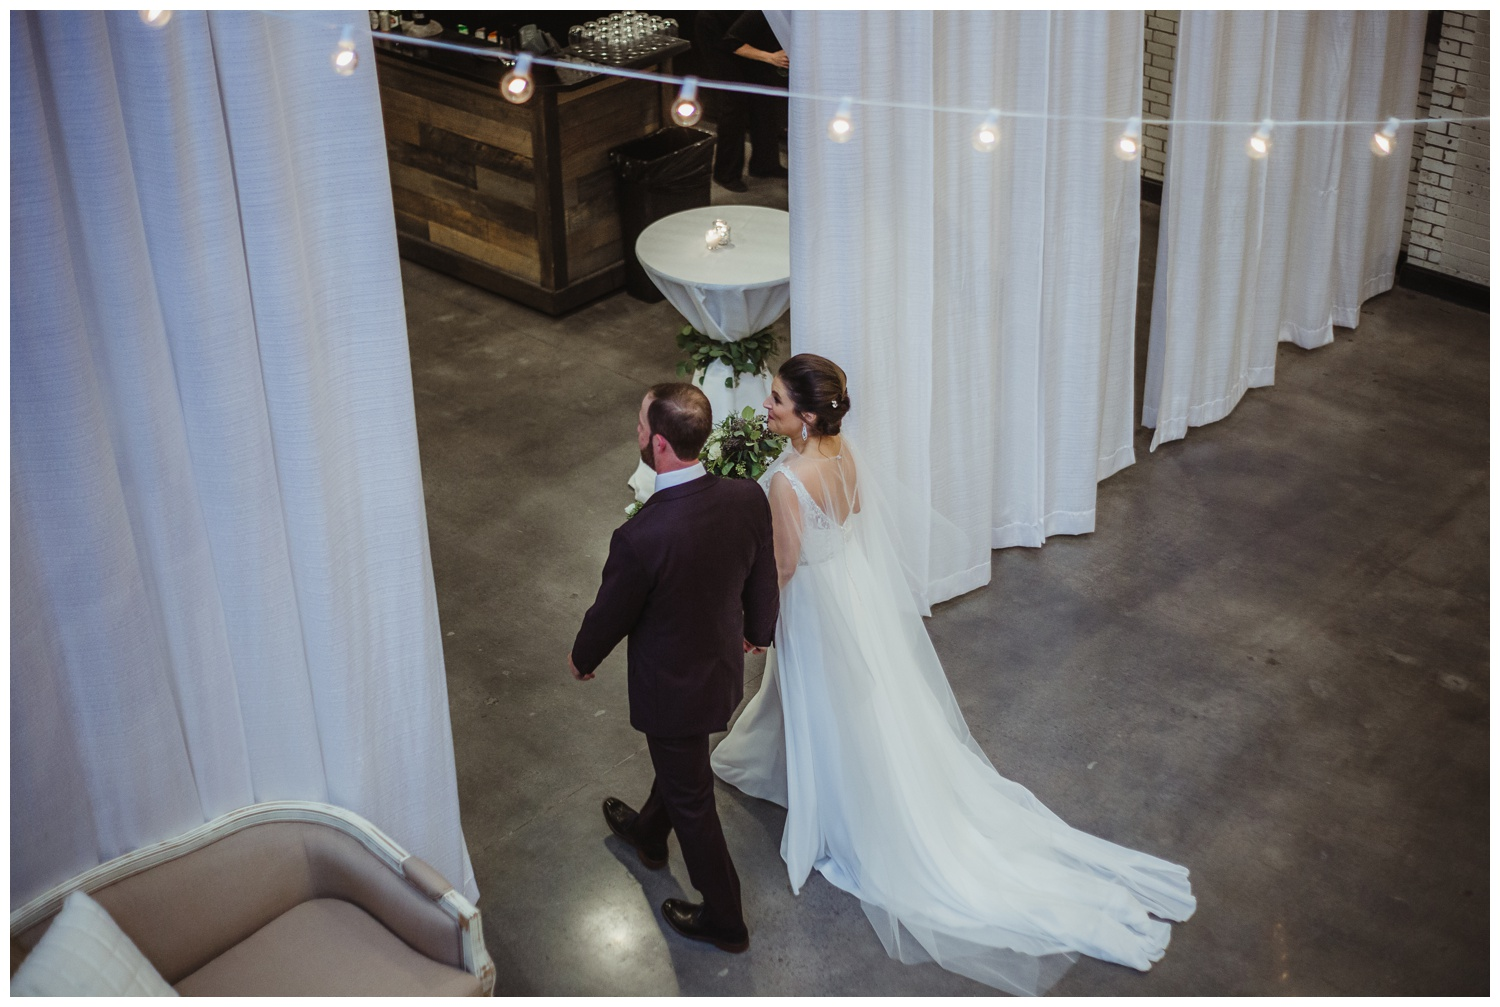 The bride and groom walk down the aisle after they exchanged vows during their indoor wedding ceremony in downtown Raleigh, photos by Rose Trail Images.